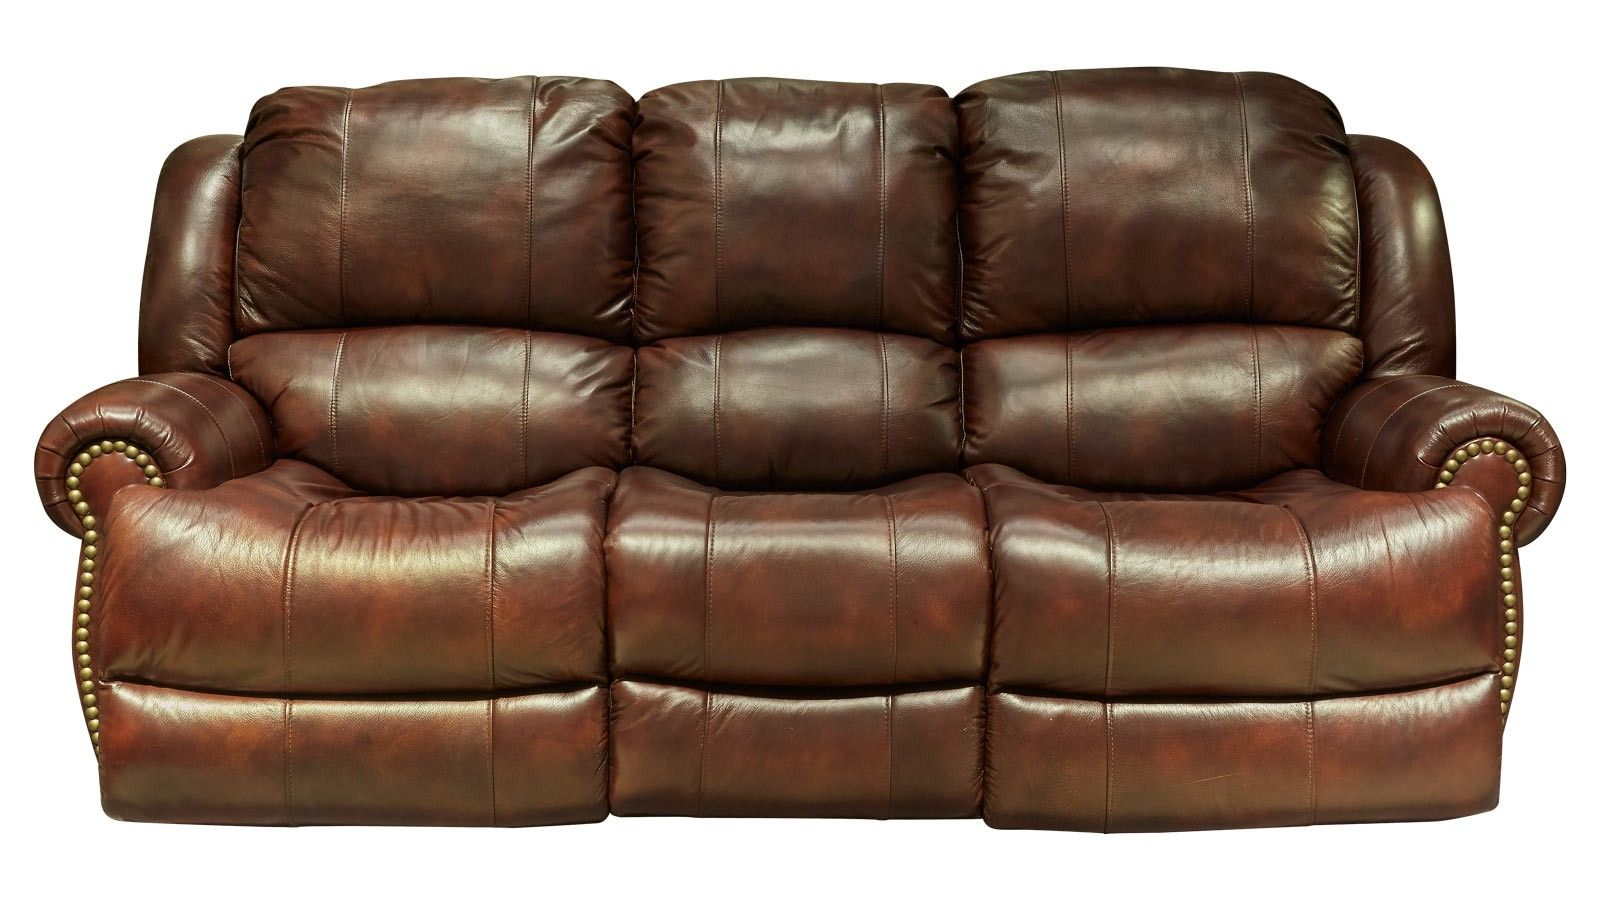 Enjoyable Capital Burgundy Power Reclining Sofa Front View Home Caraccident5 Cool Chair Designs And Ideas Caraccident5Info